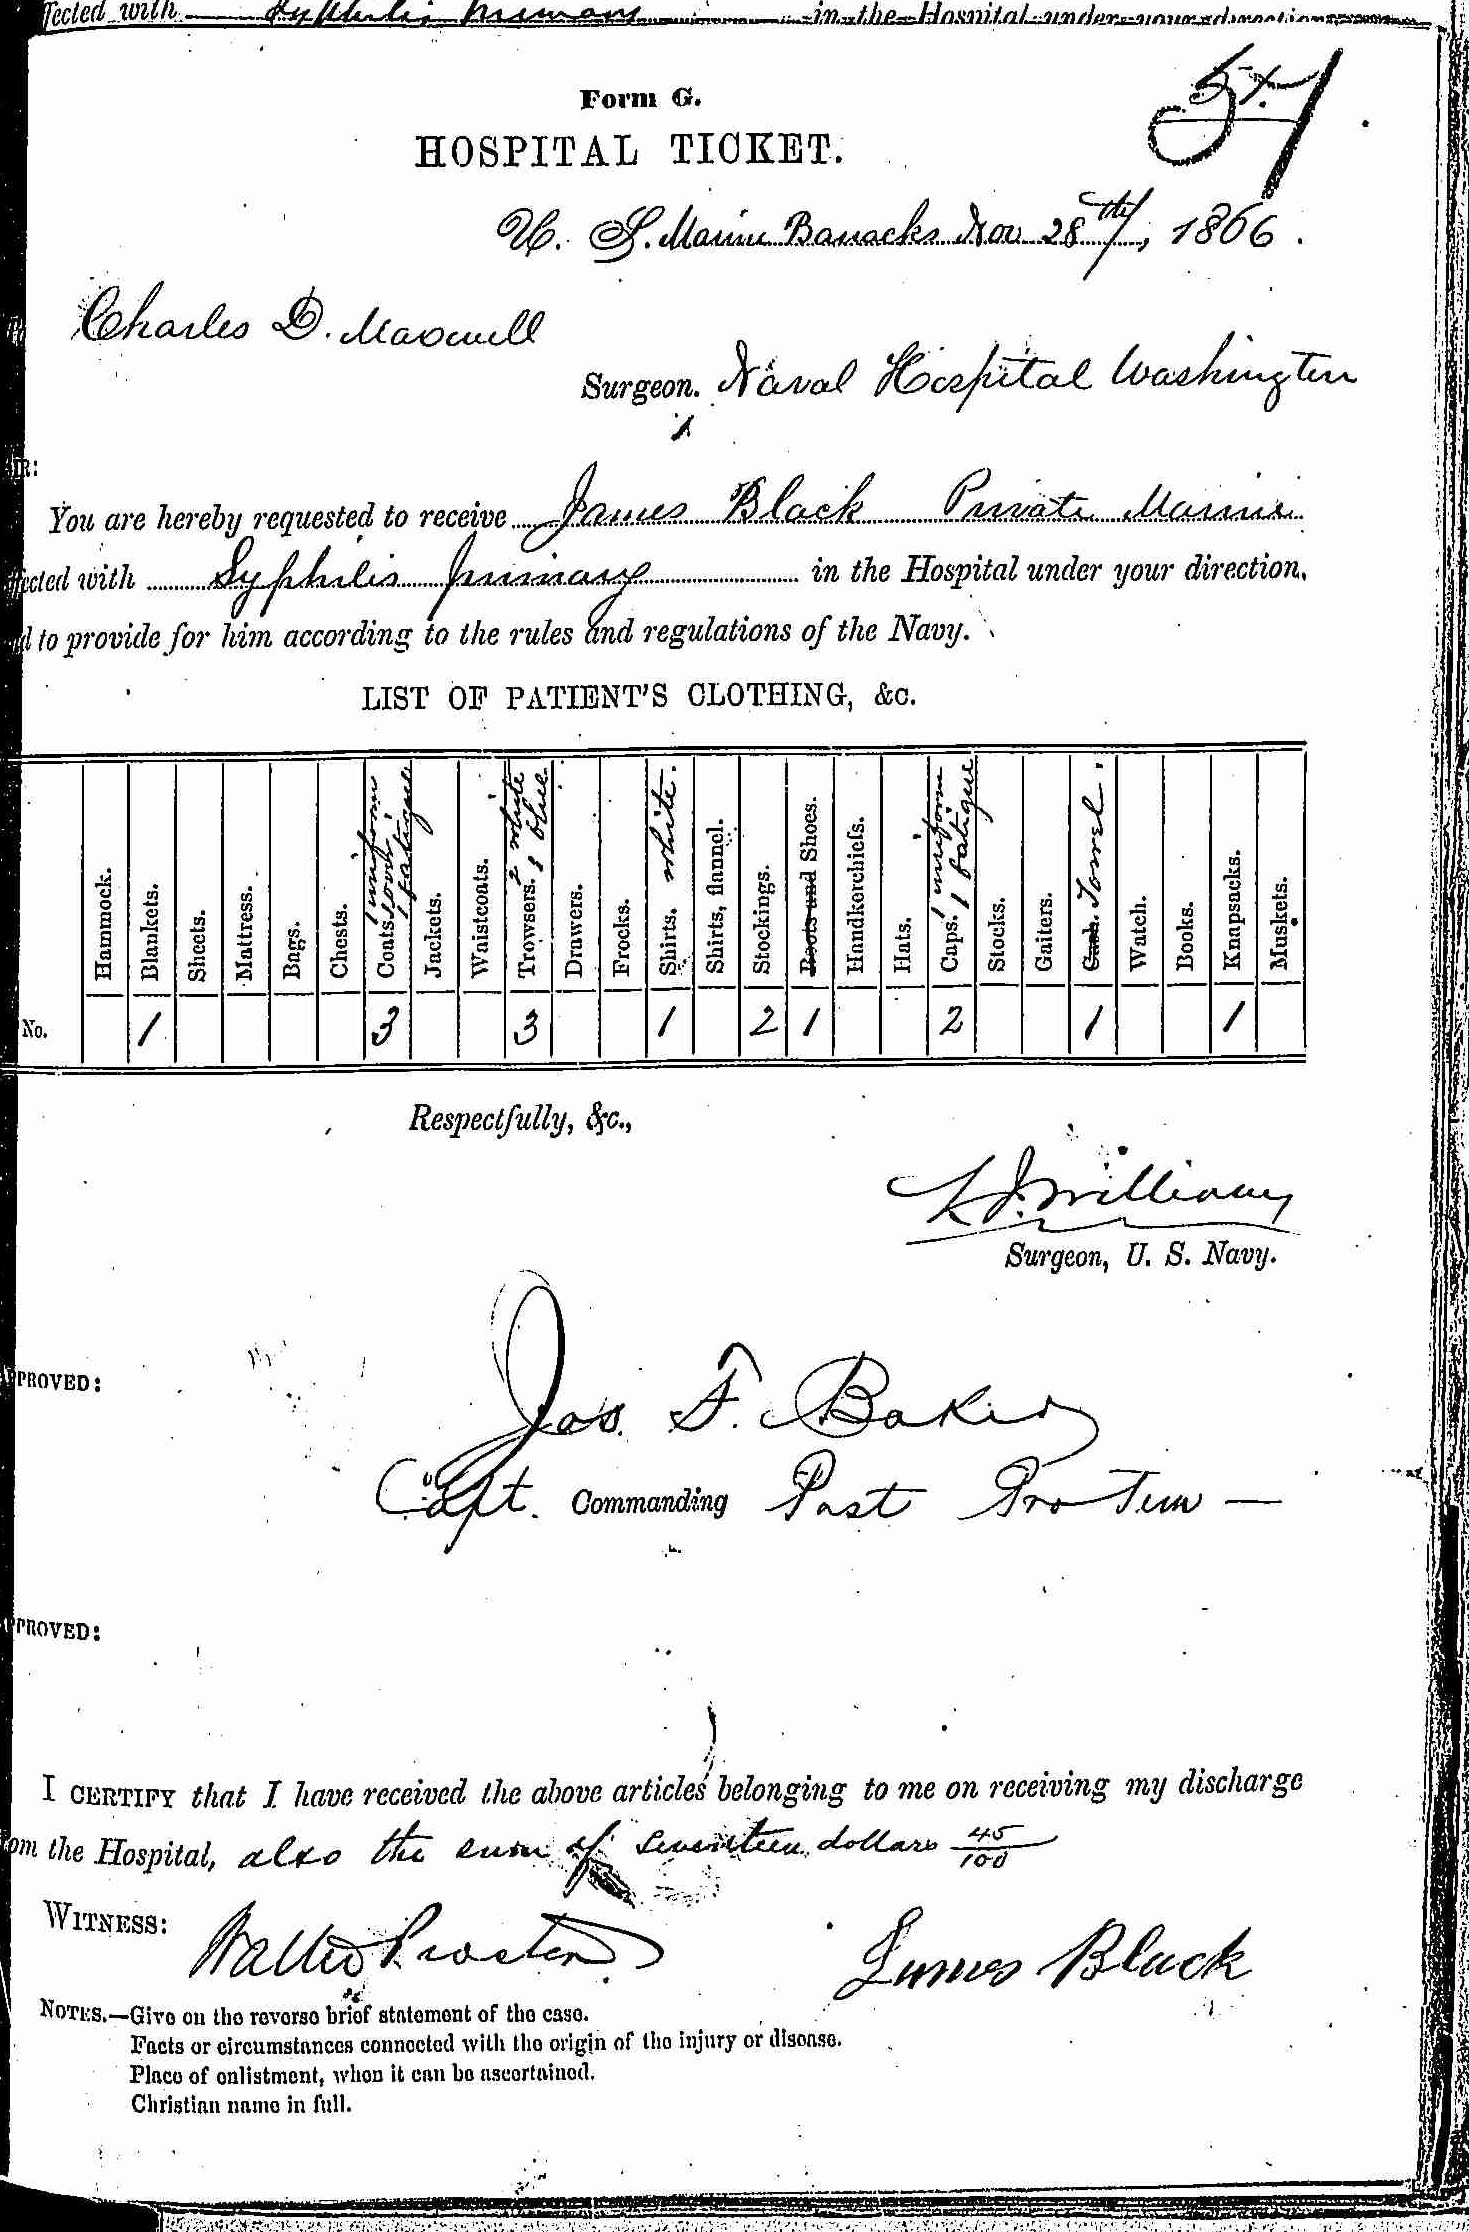 Entry for James Black (page 1 of 2) in the log Hospital Tickets and Case Papers - Naval Hospital - Washington, D.C. - 1865-68